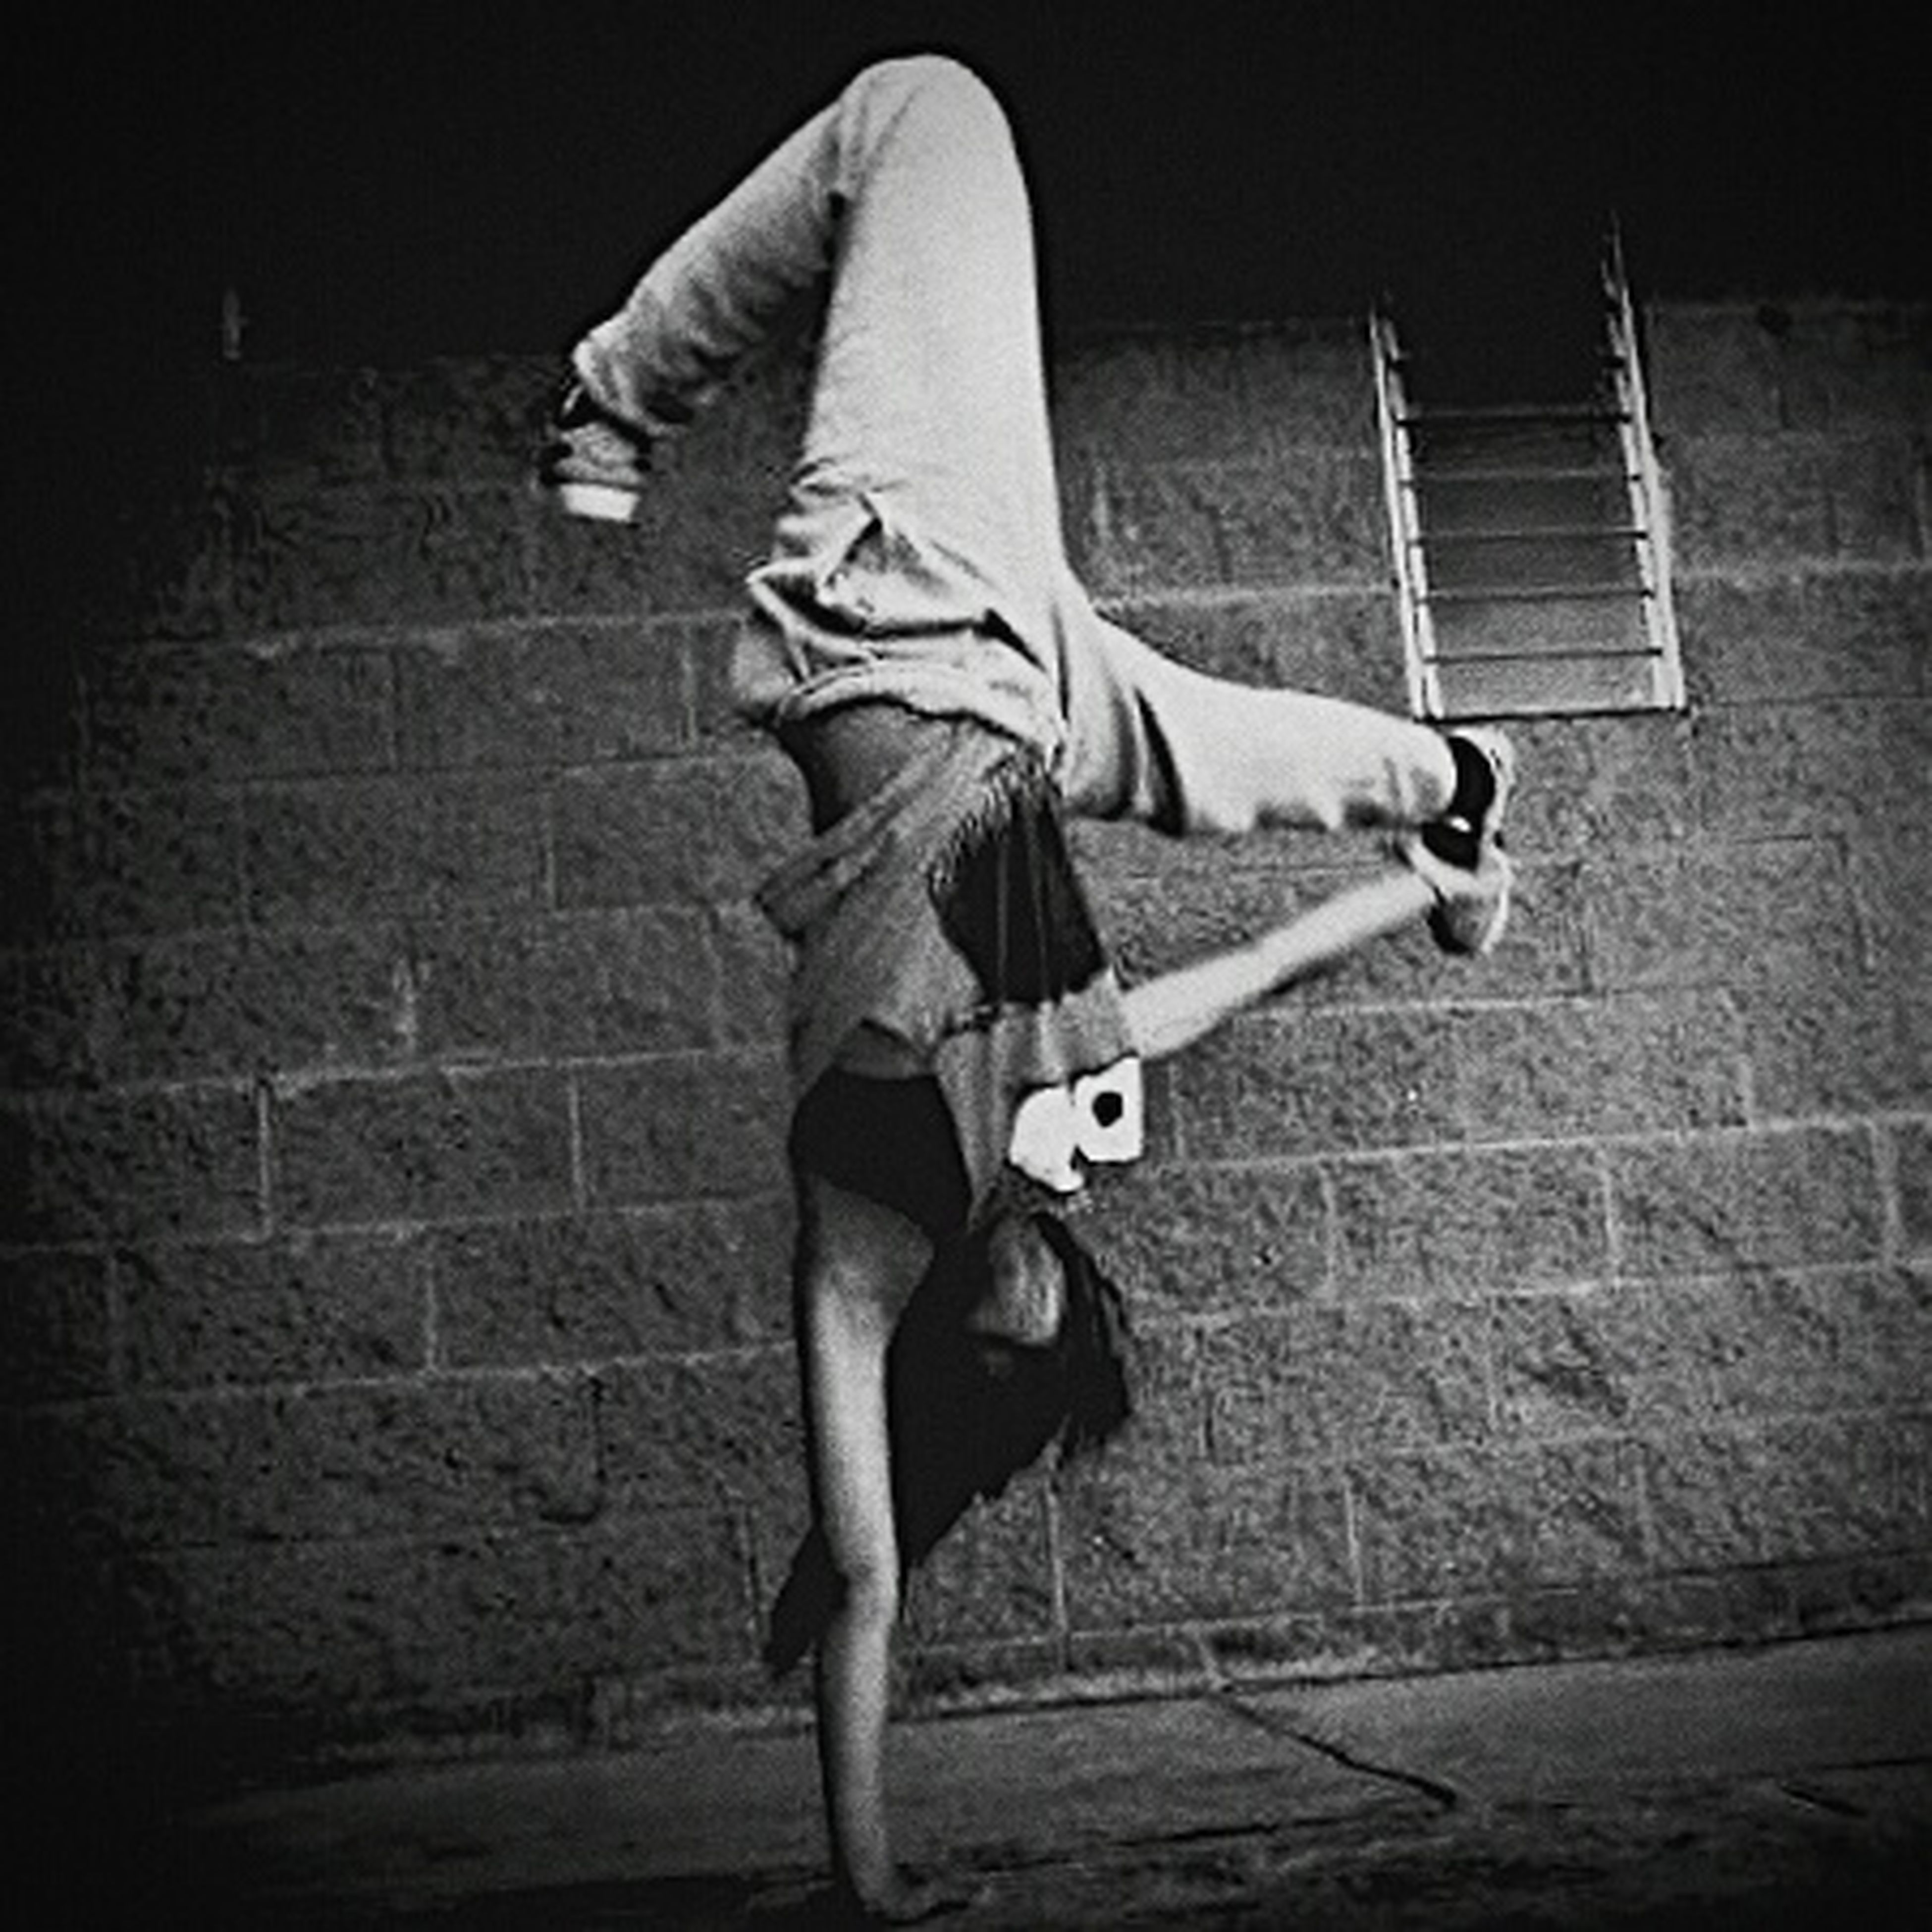 full length, lifestyles, casual clothing, leisure activity, men, skill, side view, rear view, standing, holding, night, young adult, street, front view, skateboard, performance, person, built structure